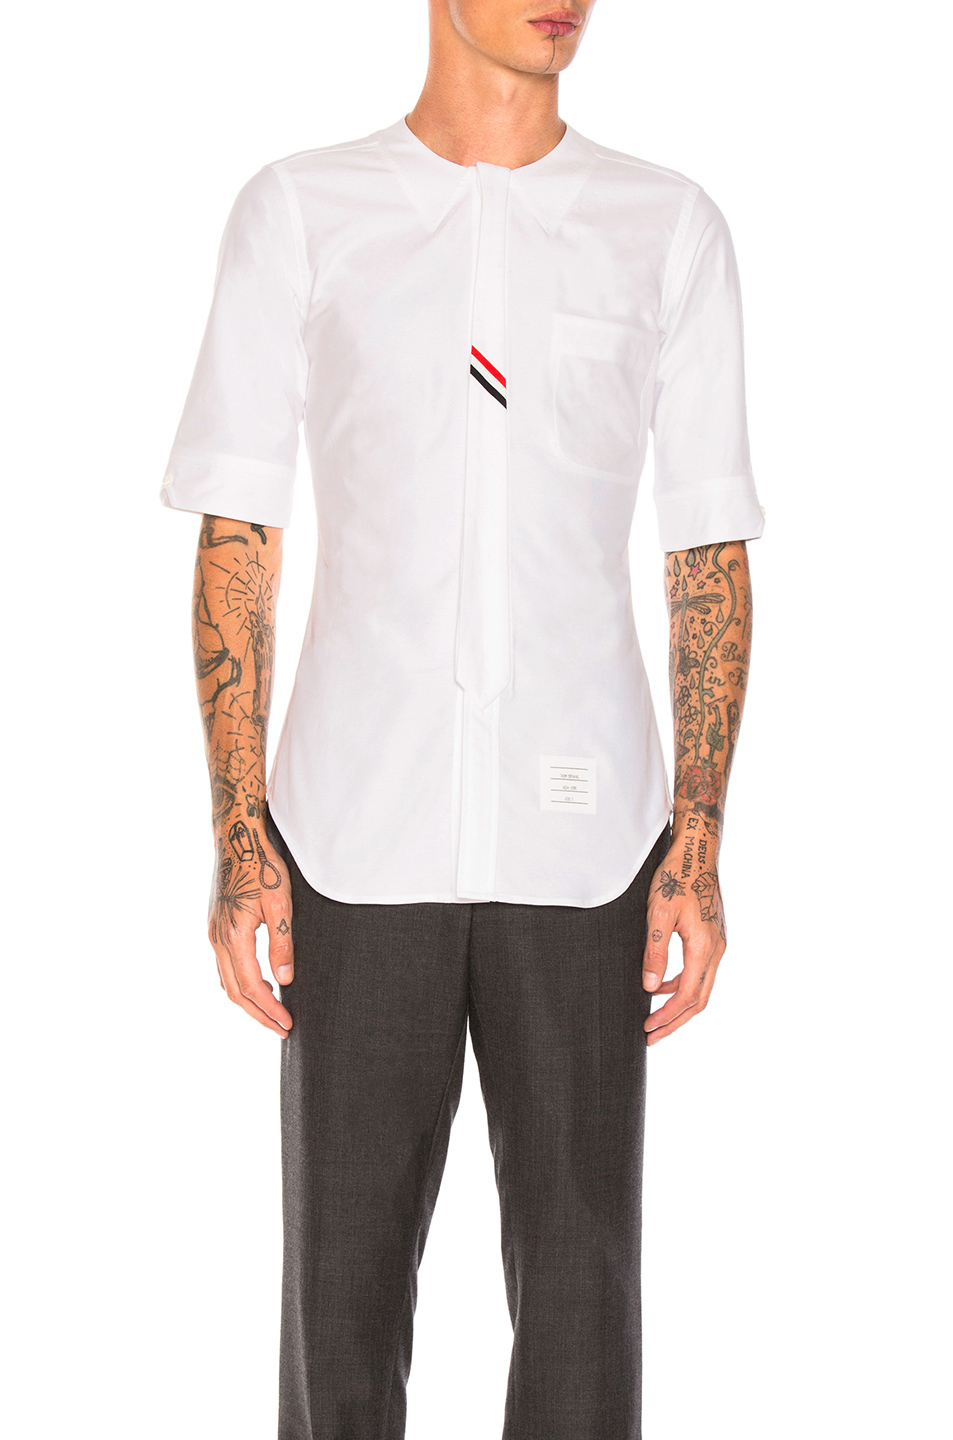 Thom Browne Collarless Short Sleeve Oxford in White